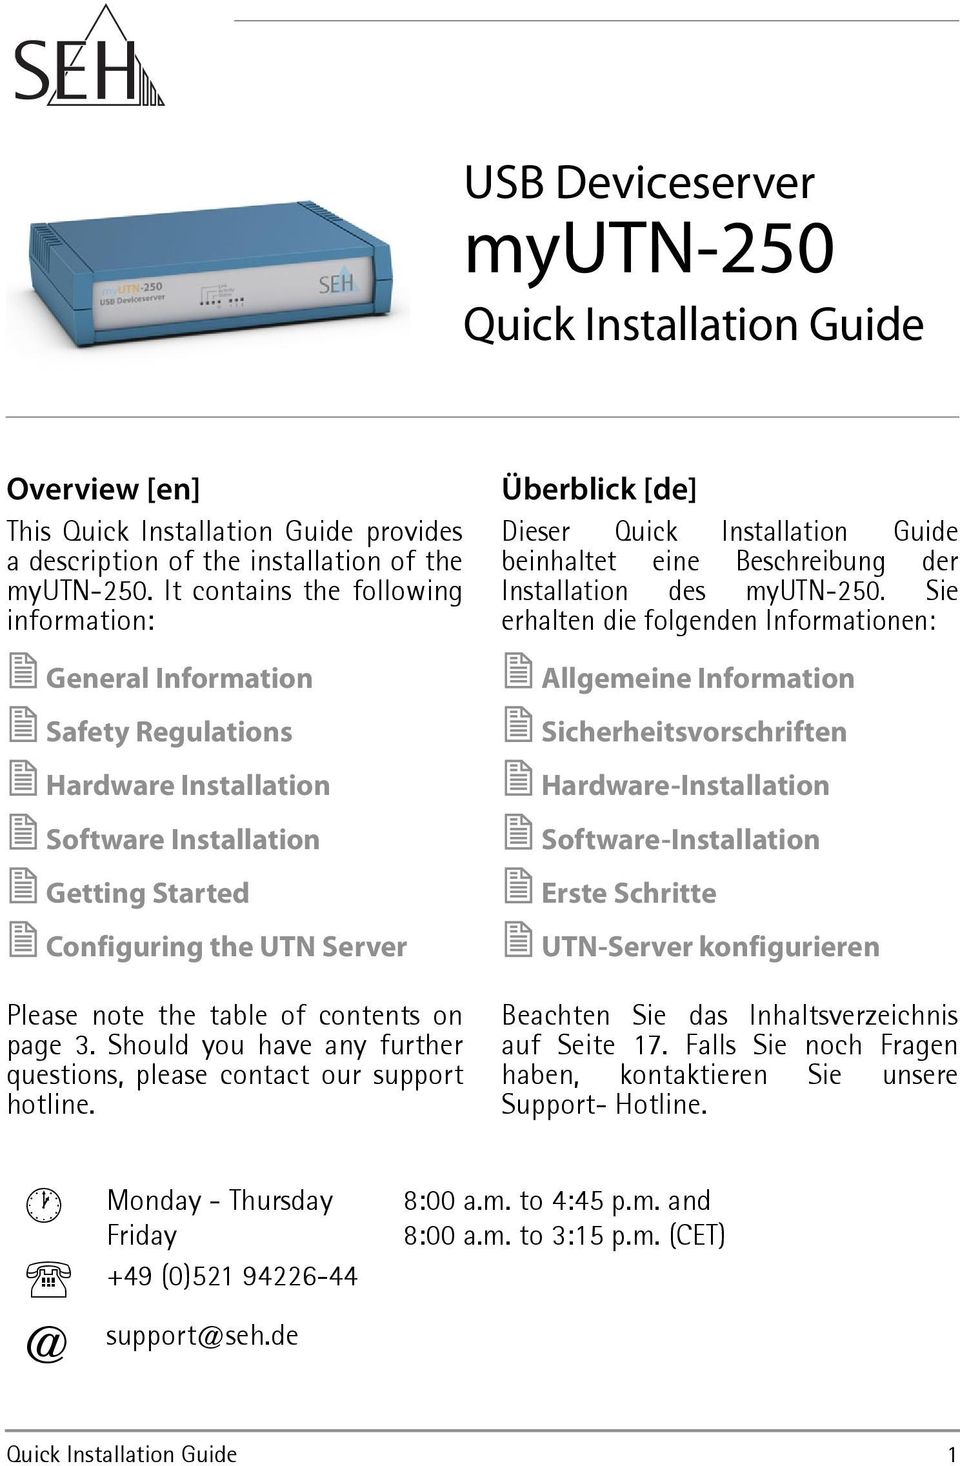 on page 3. Should you have any further questions, please contact our support hotline. Überblick [de] Dieser Quick Installation Guide beinhaltet eine Beschreibung der Installation des myutn-250.